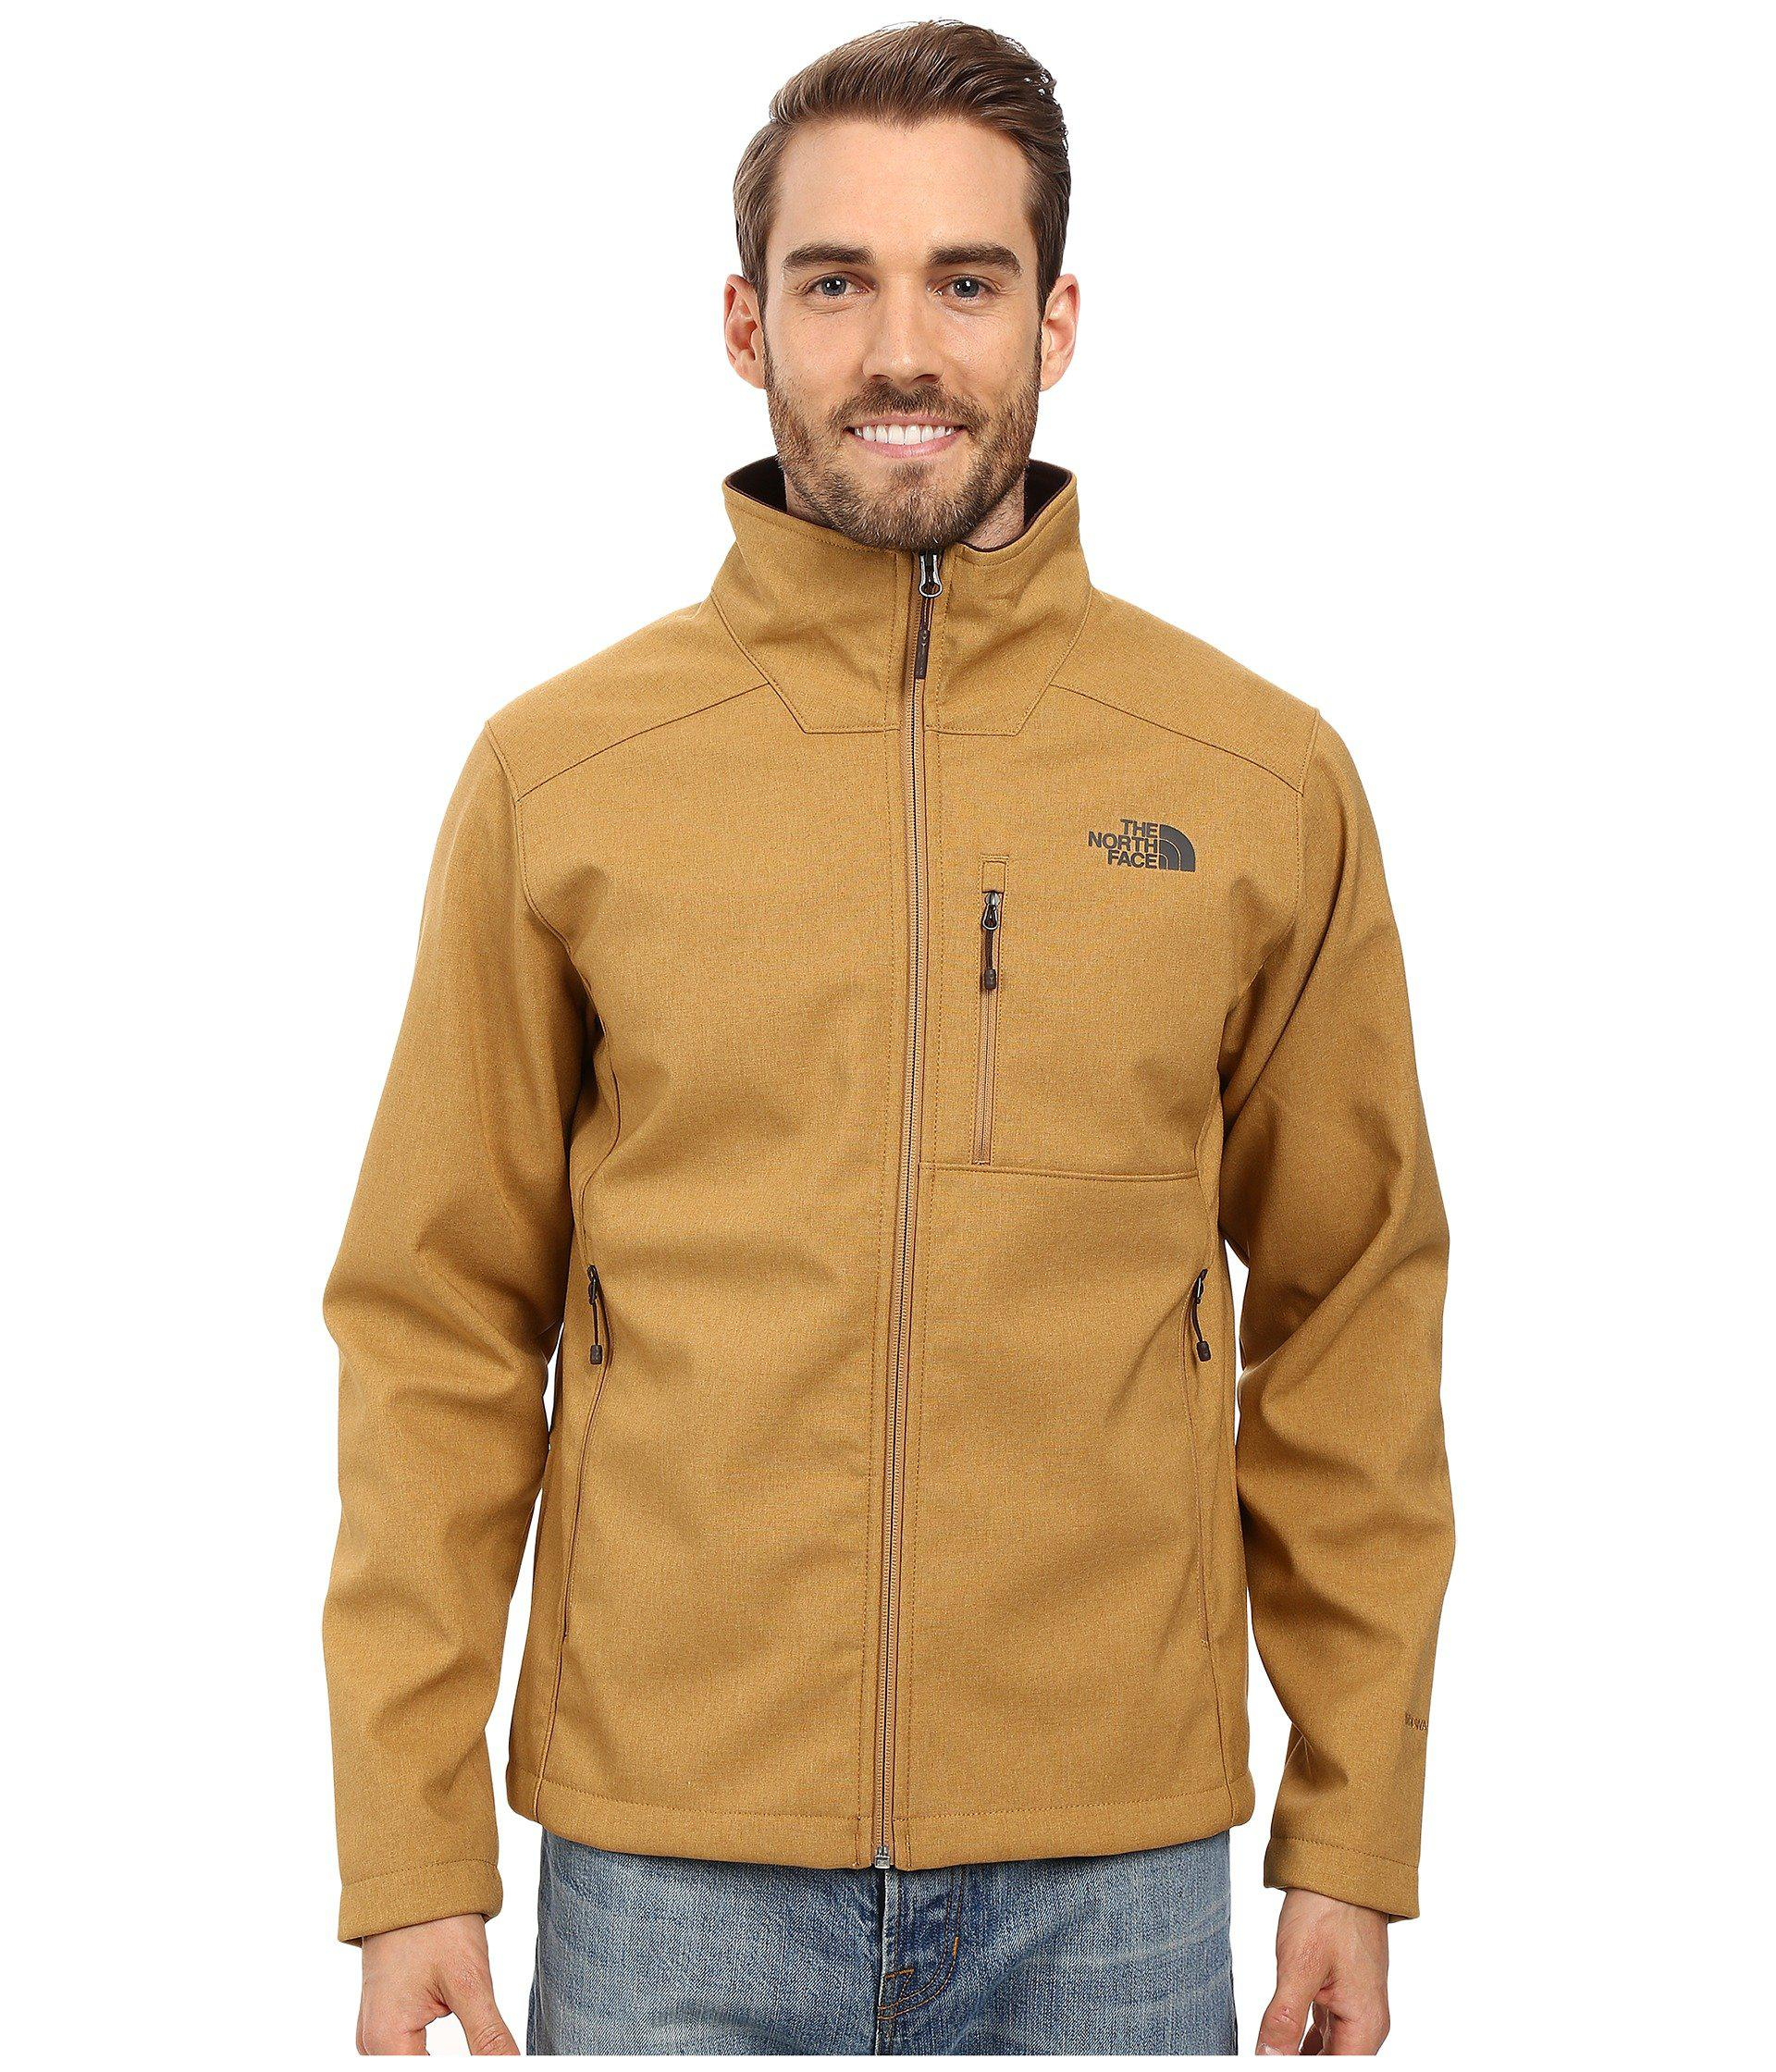 b317c3e02c9f Lyst - The North Face Apex Bionic 2 Jacket in Brown for Men